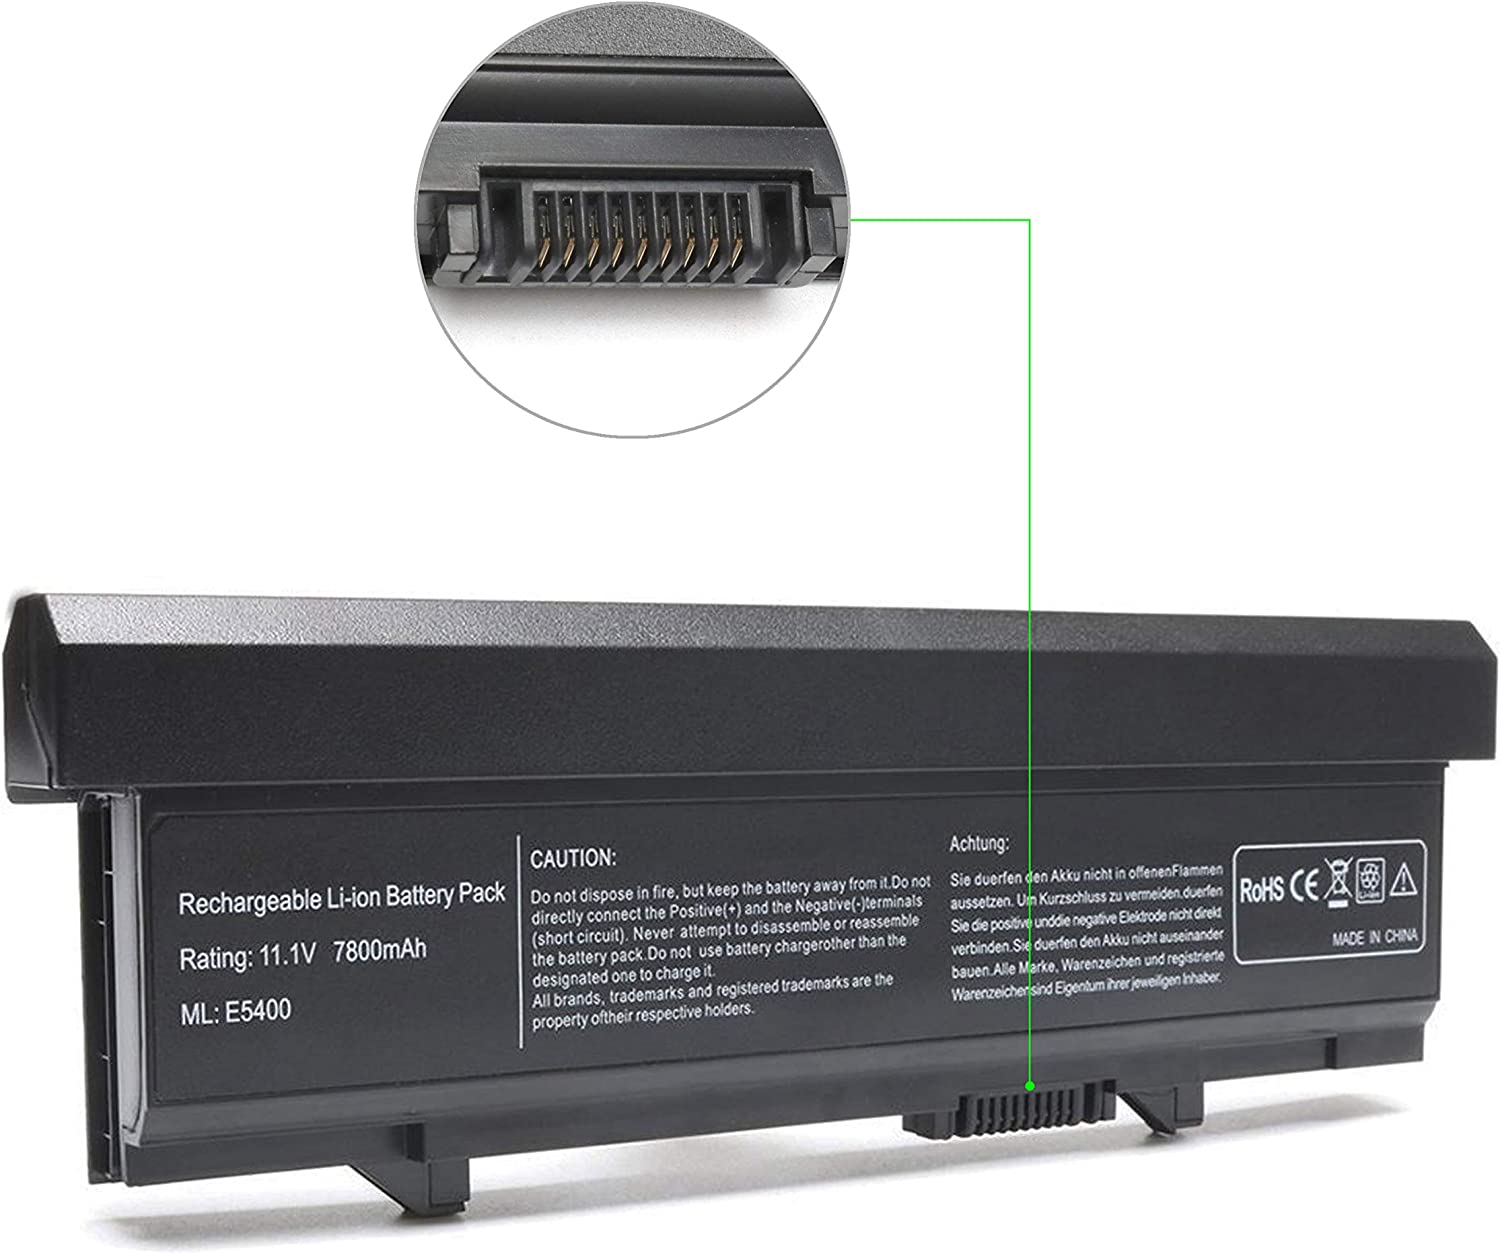 86Wh Laptop Battery Replacement for Dell Latitude E5400 E5410 E5500 E5510,P/N: KM742 WU841 KM668 KM769 KM771 PW640 U116D W071D RM649 RM656 0RM668 312-0762 312-0769 312-0902 451-10616 451-10617